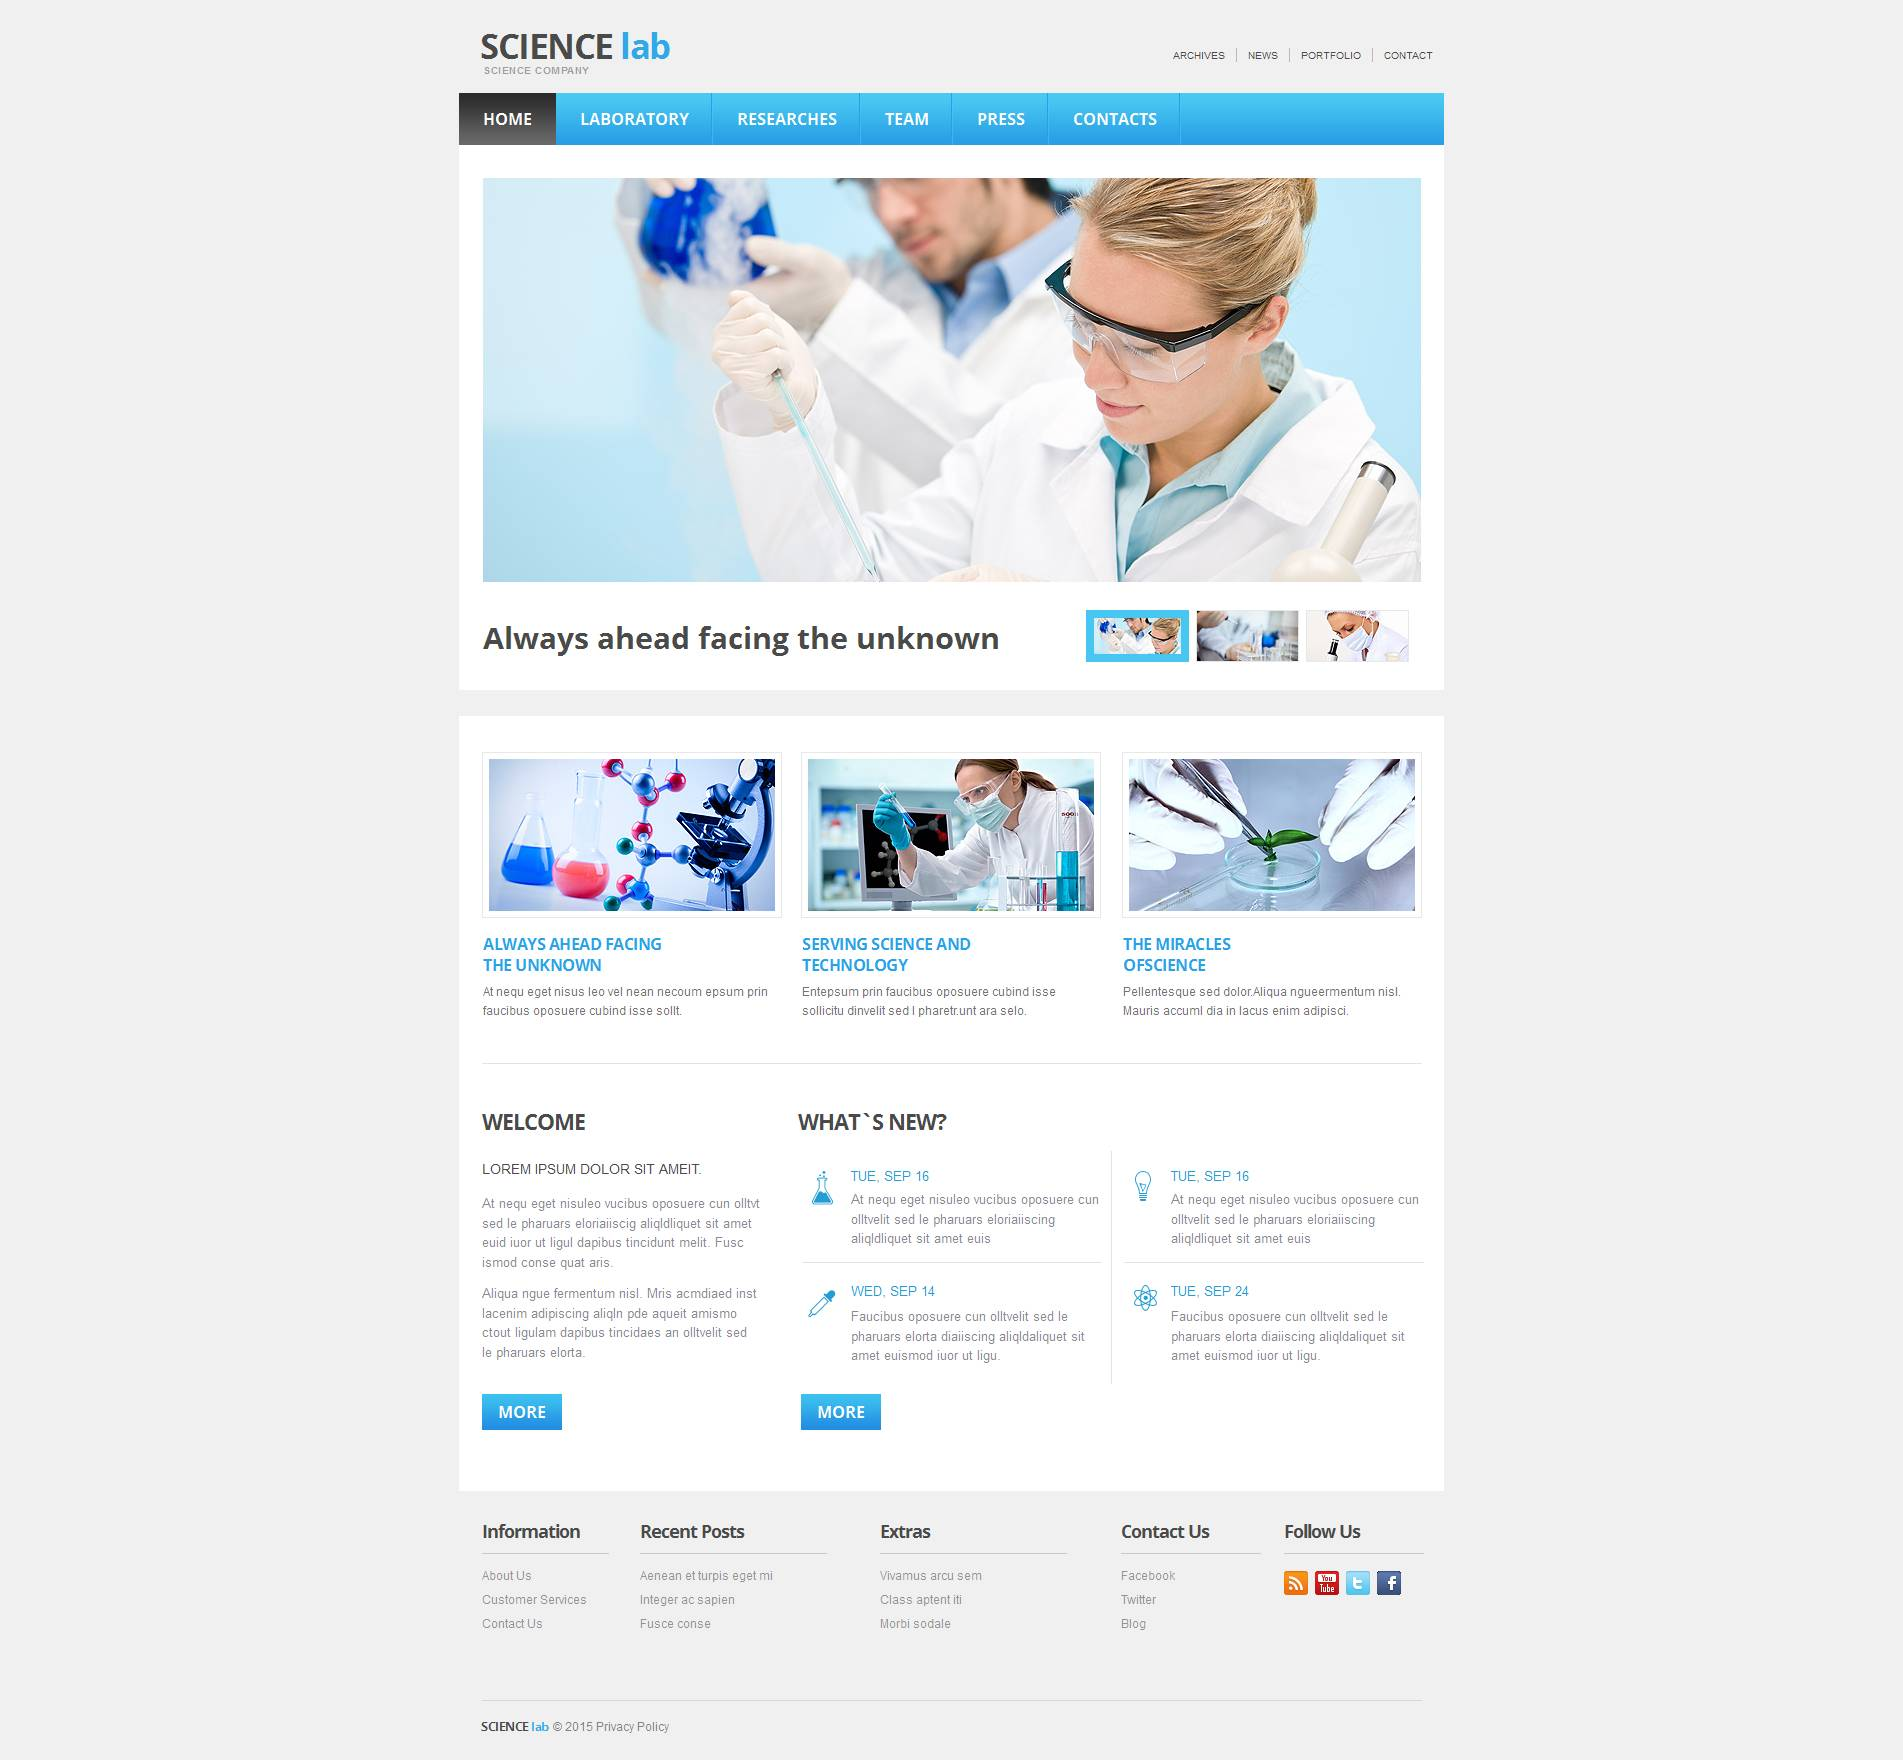 The Science Lab Company Moto CMS HTML Design 53508, one of the best Moto CMS HTML templates of its kind (science, most popular), also known as science lab company Moto CMS HTML template, knowledge Moto CMS HTML template, laboratory Moto CMS HTML template, microscope Moto CMS HTML template, medicine Moto CMS HTML template, technology Moto CMS HTML template, computers Moto CMS HTML template, research Moto CMS HTML template, services solutions Moto CMS HTML template, electronics Moto CMS HTML template, aviation Moto CMS HTML template, space Moto CMS HTML template, investigation Moto CMS HTML template, articles Moto CMS HTML template, education Moto CMS HTML template, biotech Moto CMS HTML template, support Moto CMS HTML template, customers Moto CMS HTML template, inspection Moto CMS HTML template, equipment Moto CMS HTML template, testimonials Moto CMS HTML template, overview Moto CMS HTML template, webs and related with science lab company, knowledge, laboratory, microscope, medicine, technology, computers, research, services solutions, electronics, aviation, space, investigation, articles, education, biotech, support, customers, inspection, equipment, testimonials, overview, webs, etc.